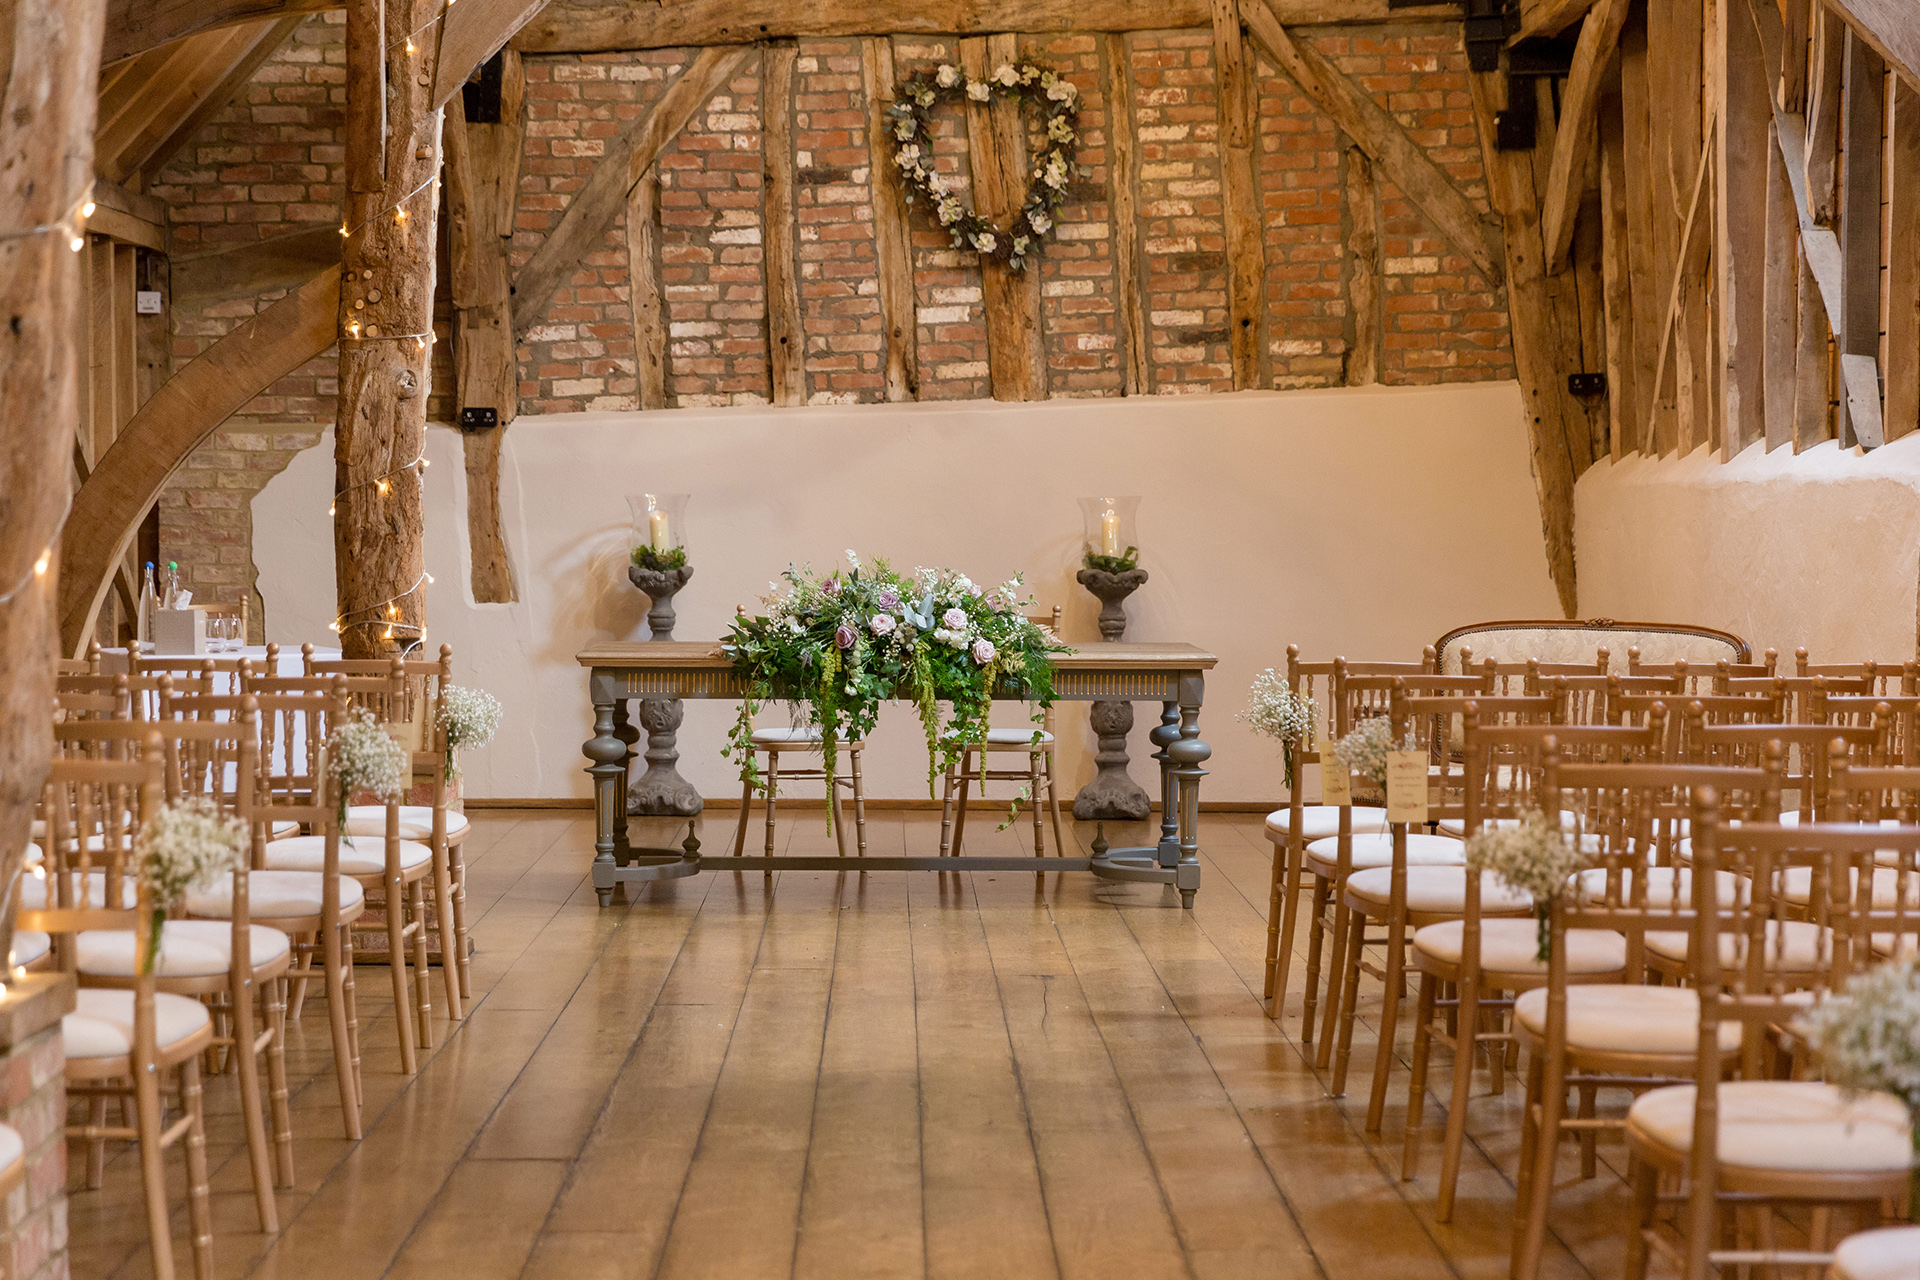 The Rickety Barn is set up for an elegant summer wedding ceremony